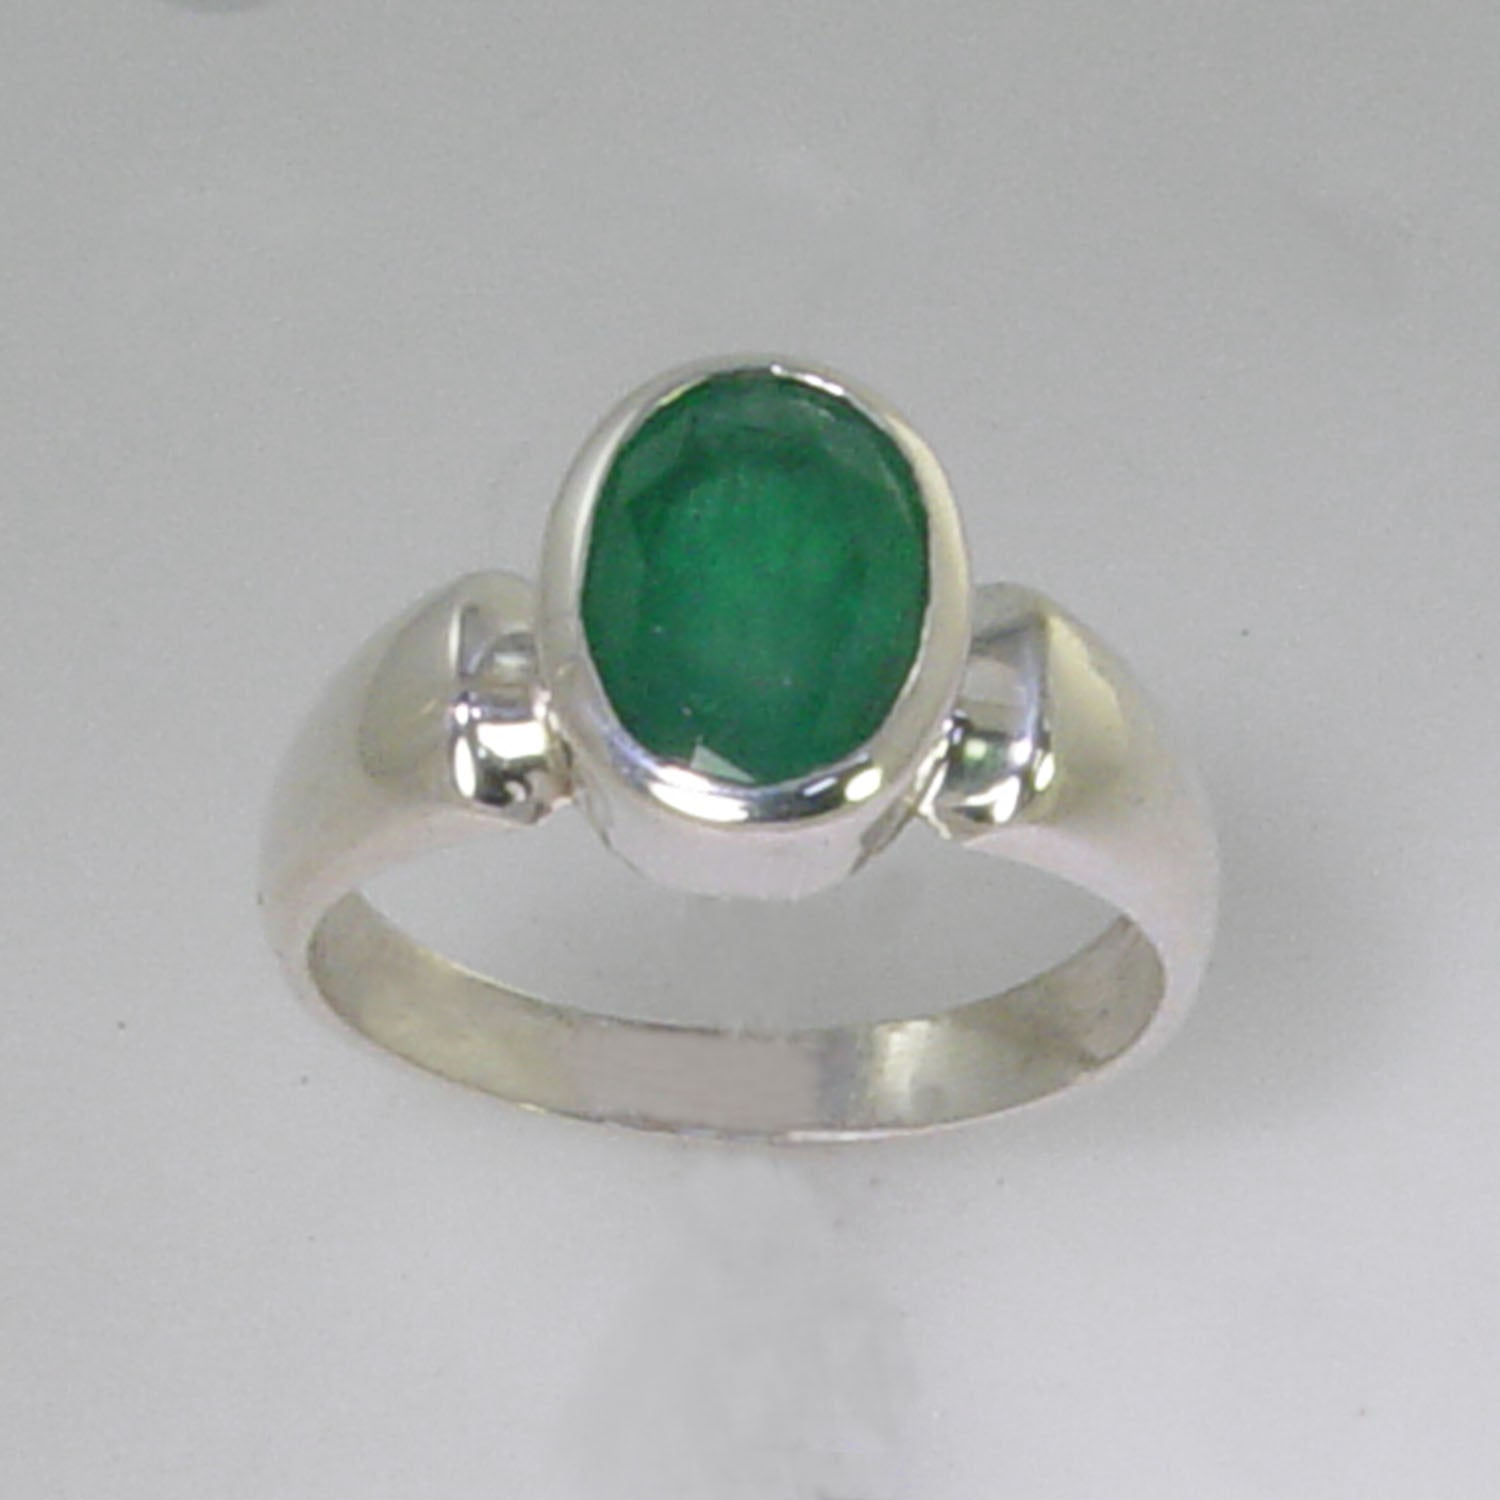 Emerald 1.9 ct Oval Bezel Set Sterling Silver Ring, Size 6